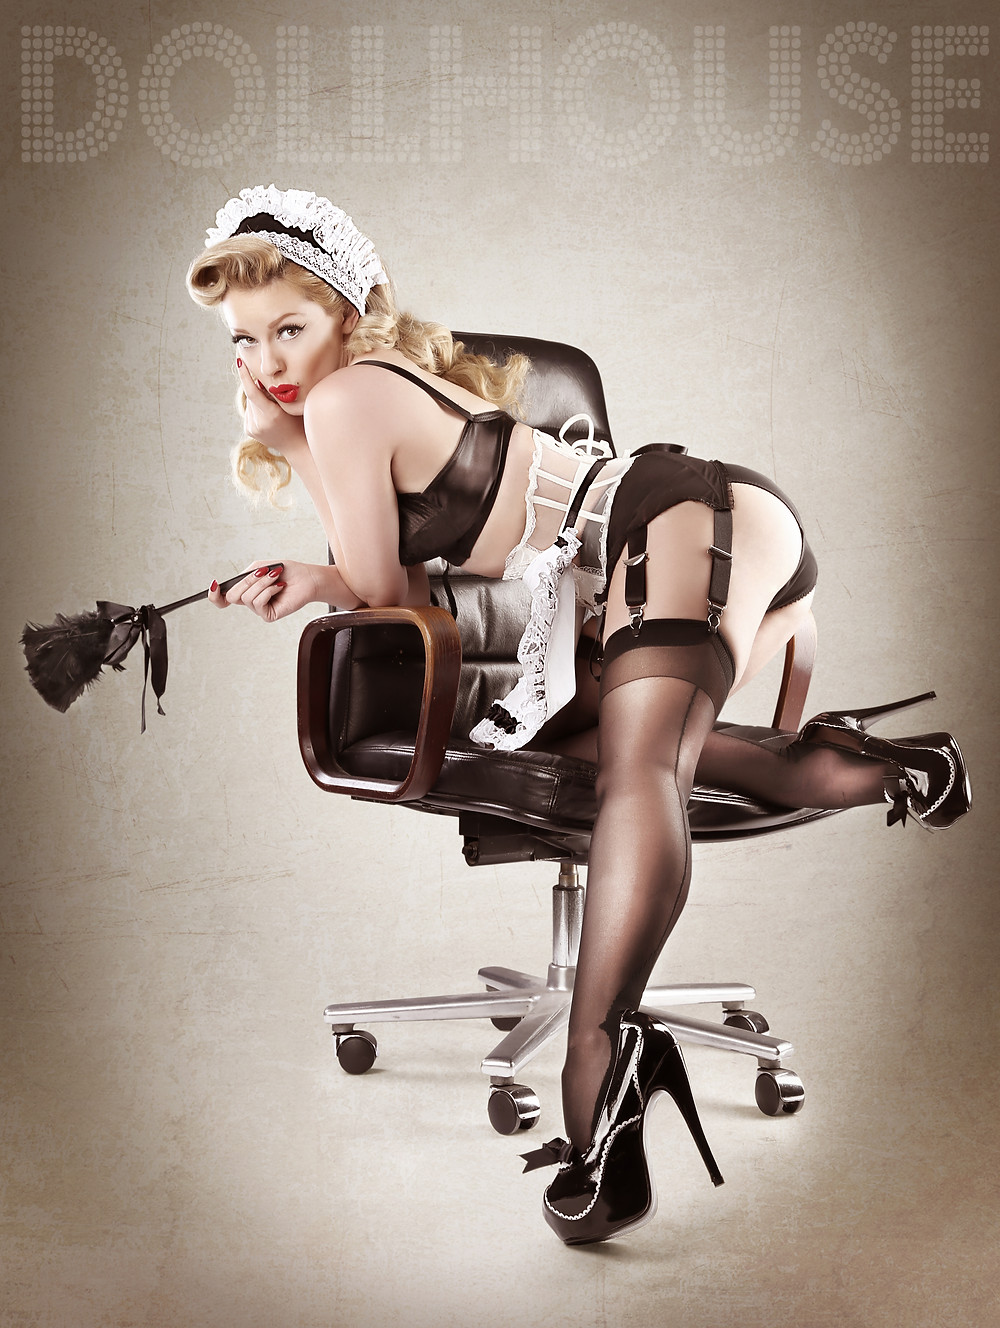 Heather Valentine French Maid Pin Up Ideas By DollHouse Photography